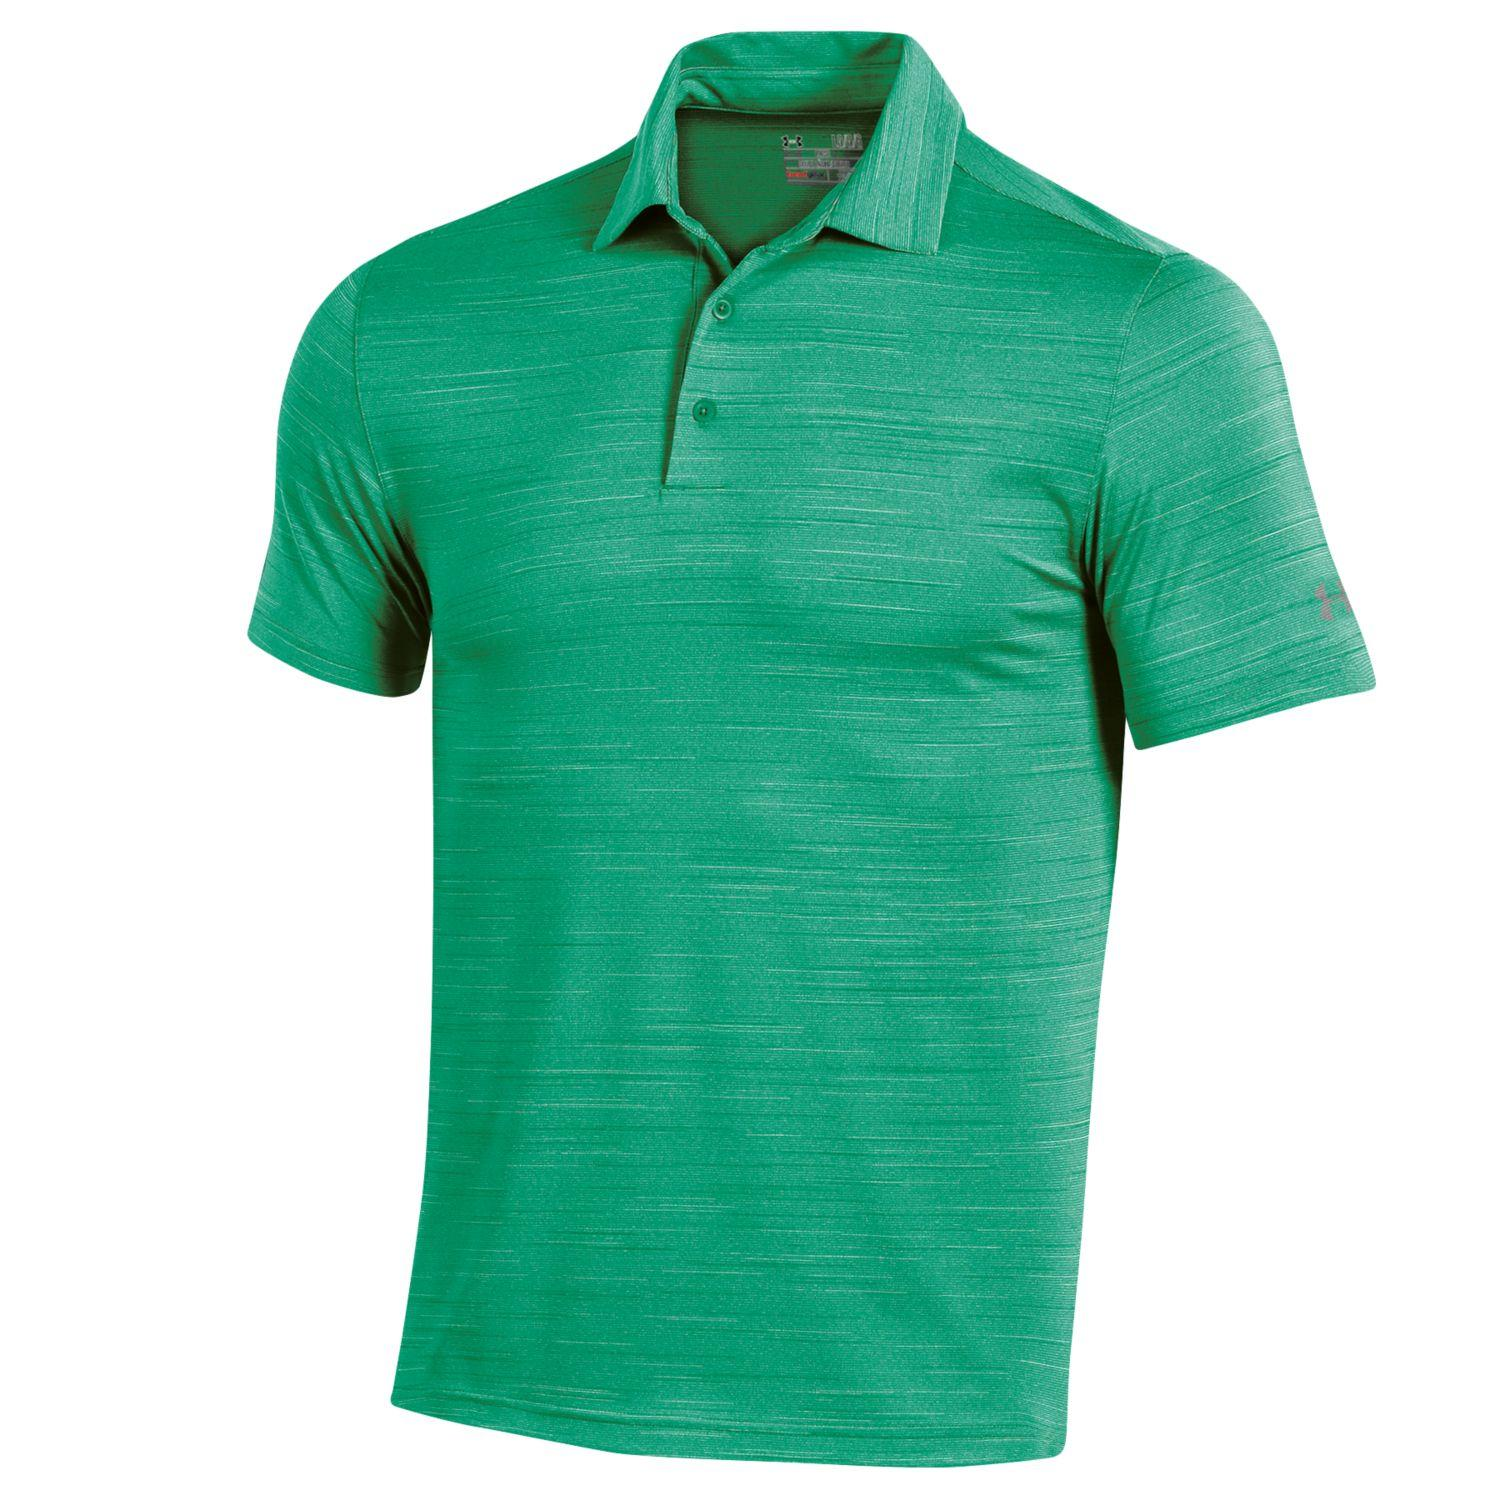 Under Armour Elevated Heather Polo Golf Shirt Mens New ...